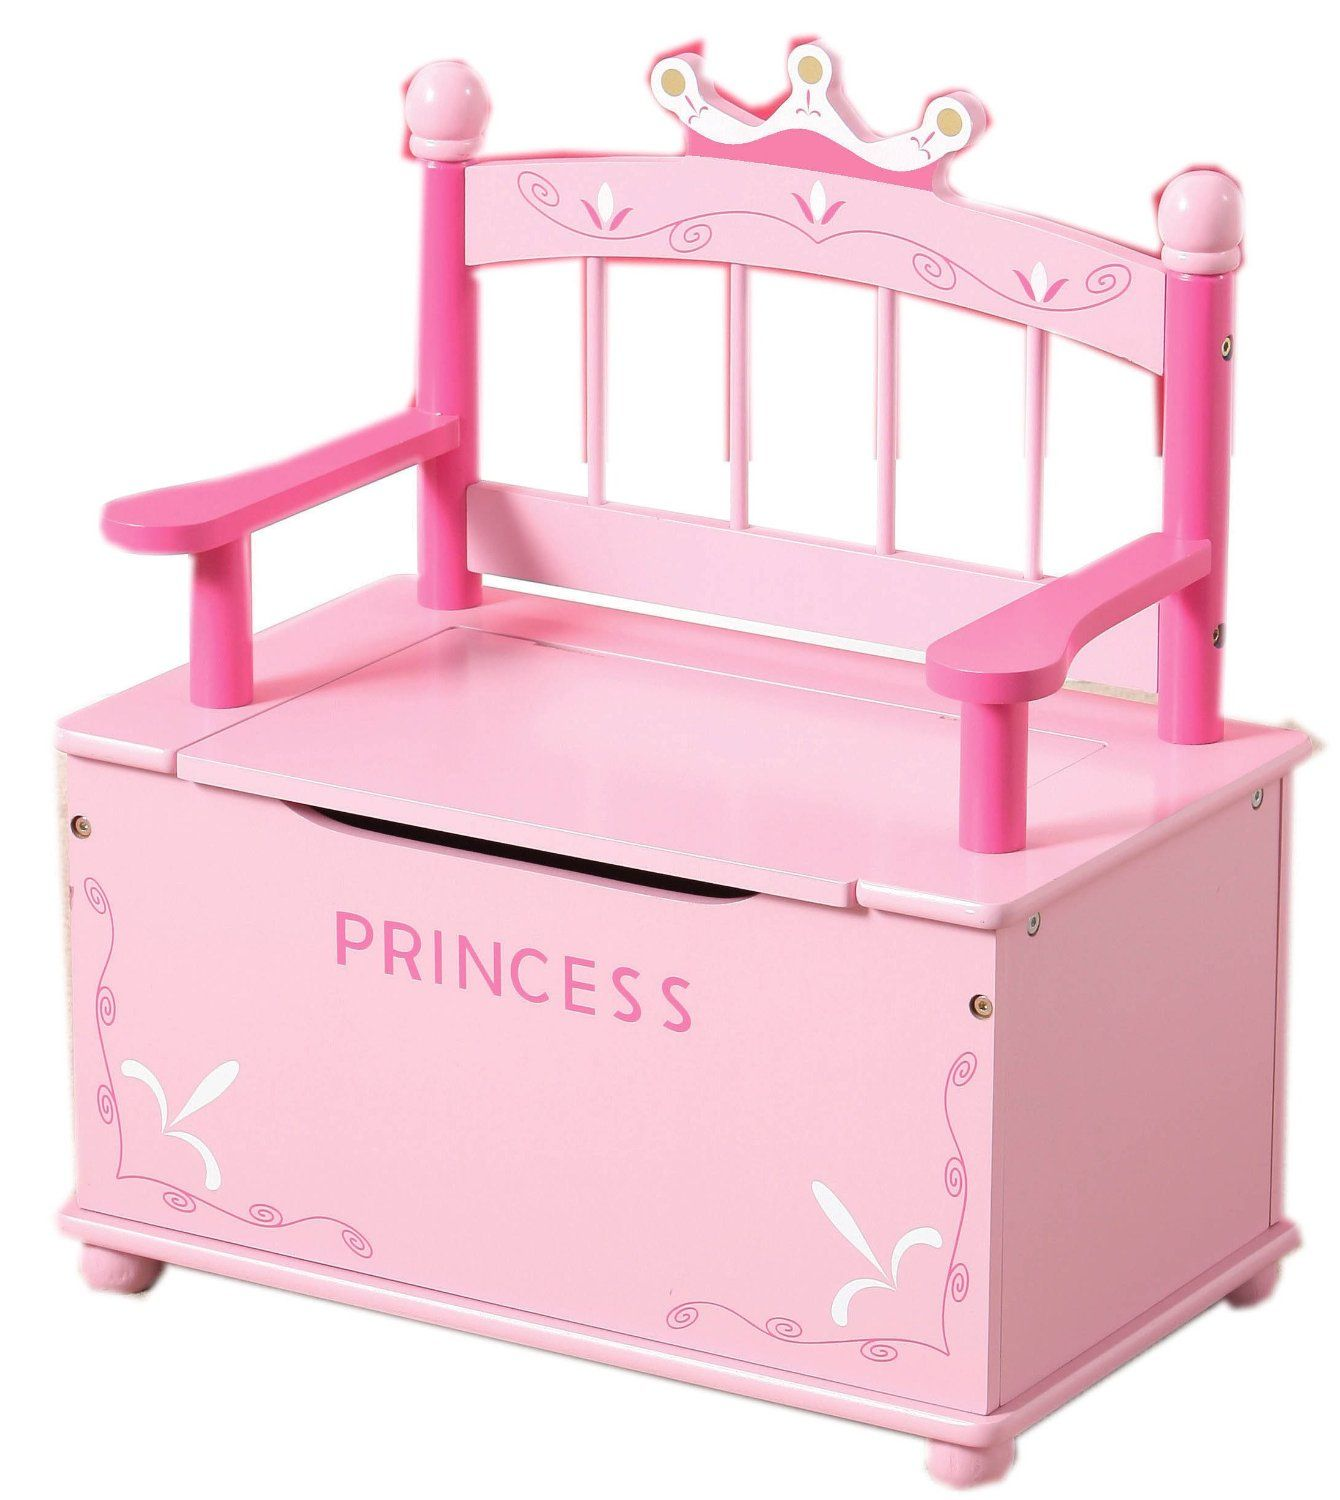 Storage Box Chair Philippines Cheap Tables And Chairs For Restaurants Amazon Co Uk Pink Princess Wooden Bench Toy Chest